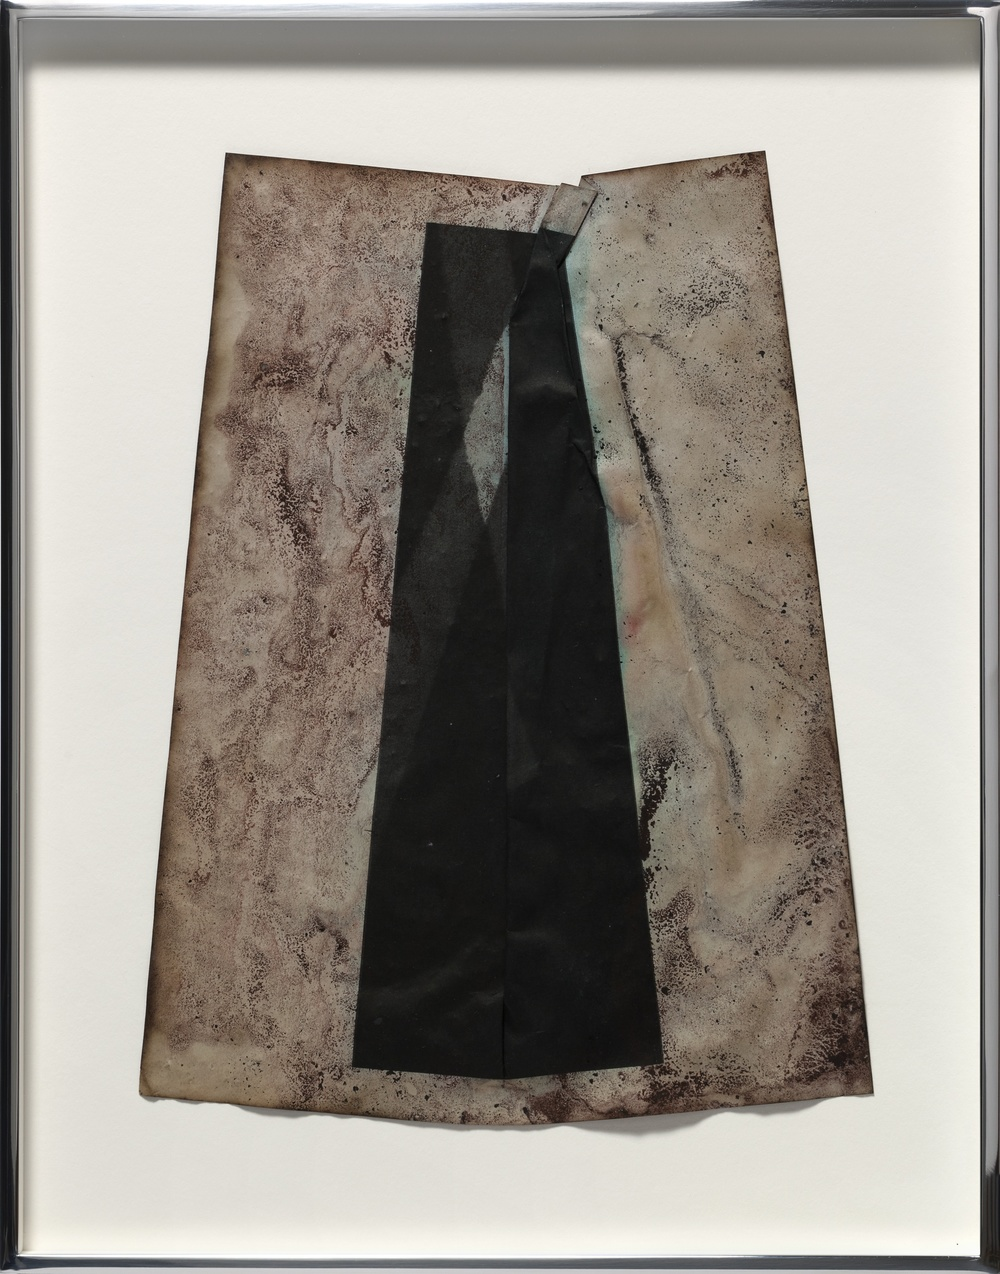 Untitled 2013 Inks and mixed media on dyed inkjet print 38.1 x 29.2 cm / 15 x 11.5 in framed